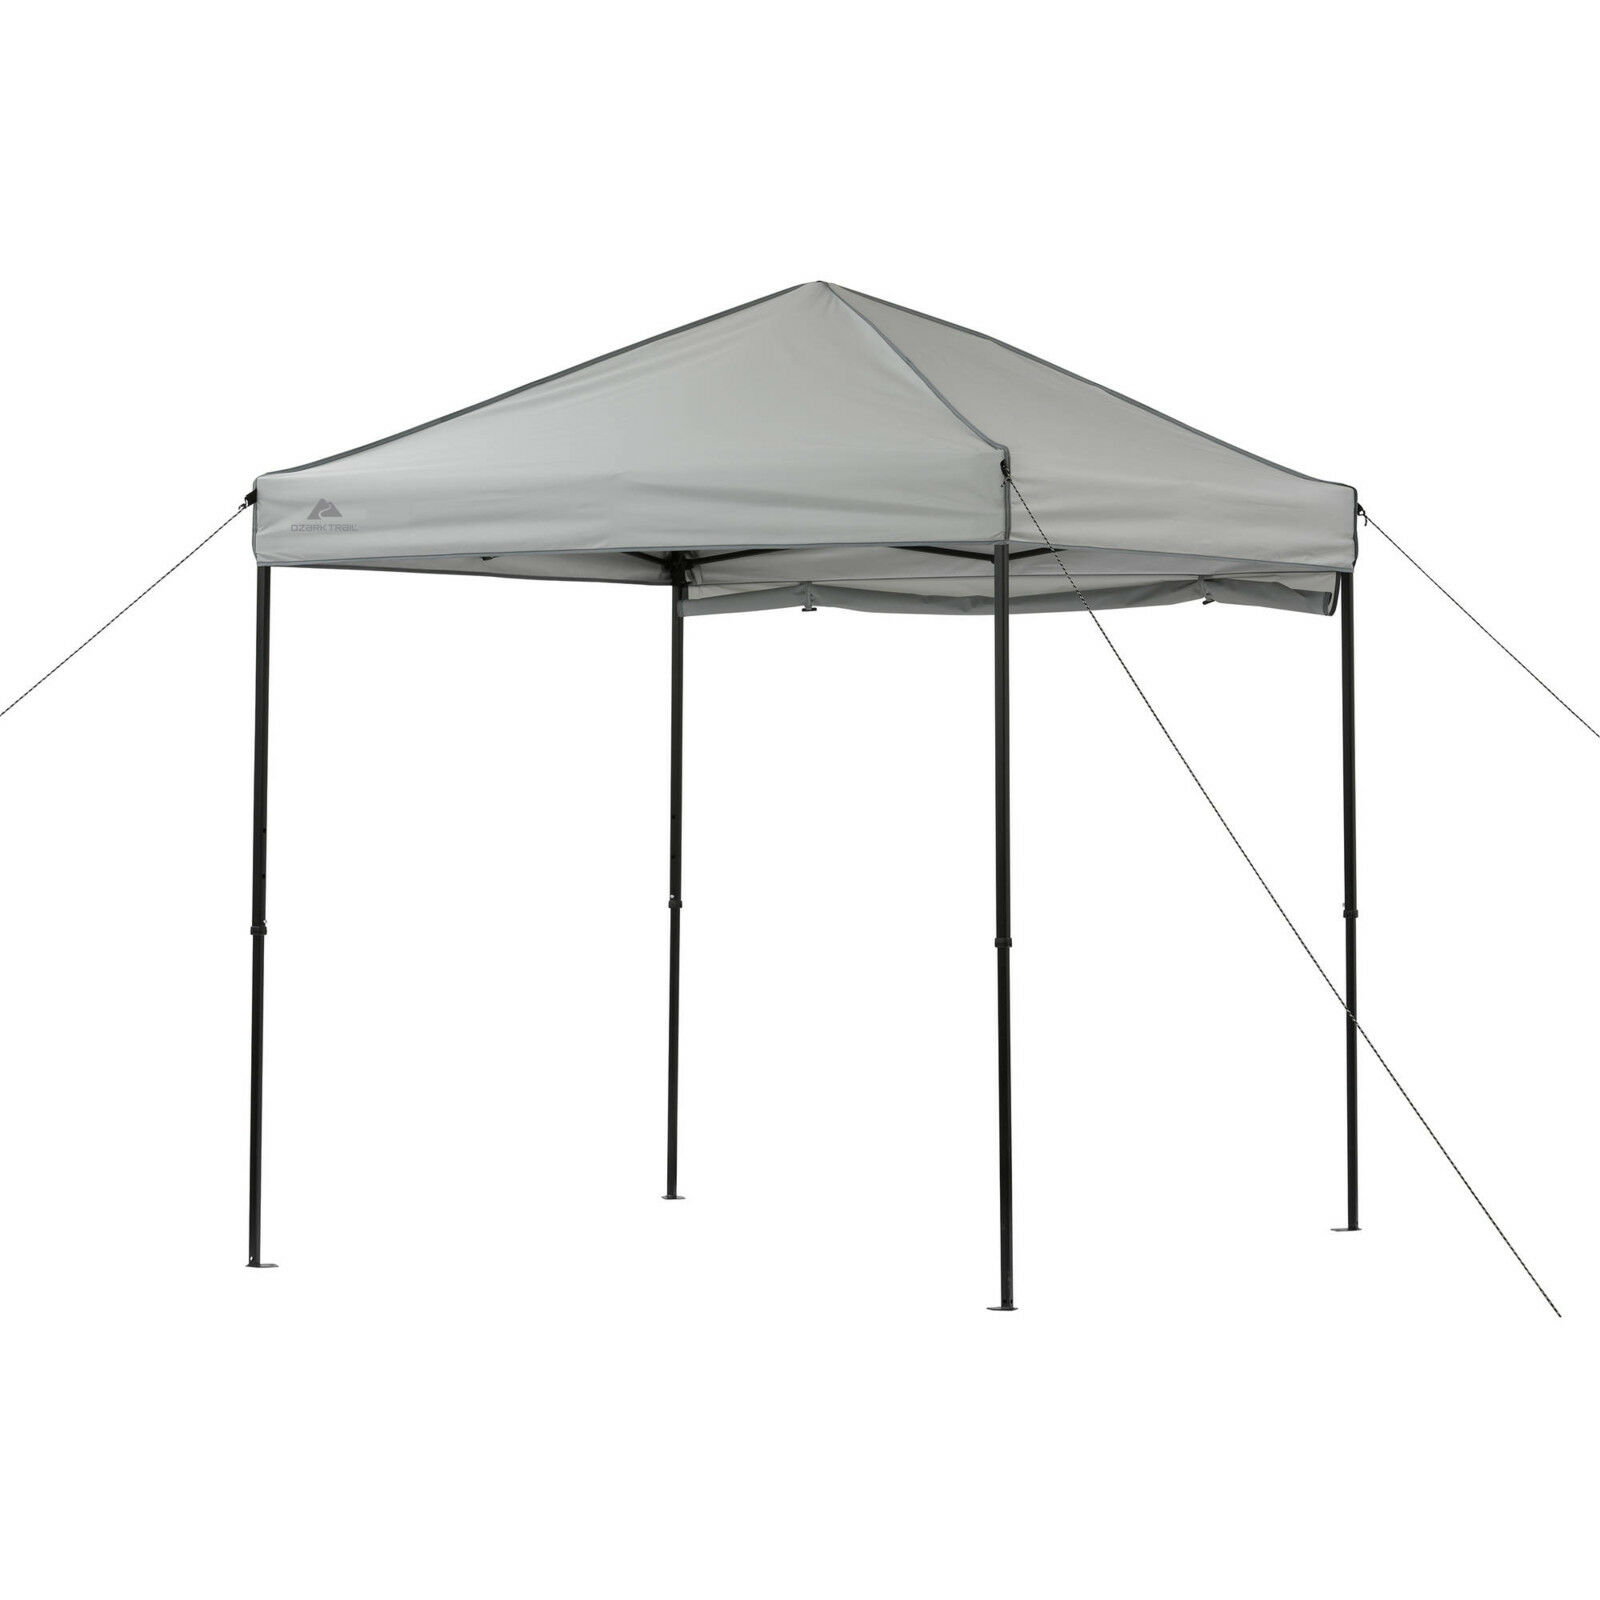 6' x 6' Instant Sports Canopy Tent Outdoor Sun Shade Camping Game Tarp Tailgate